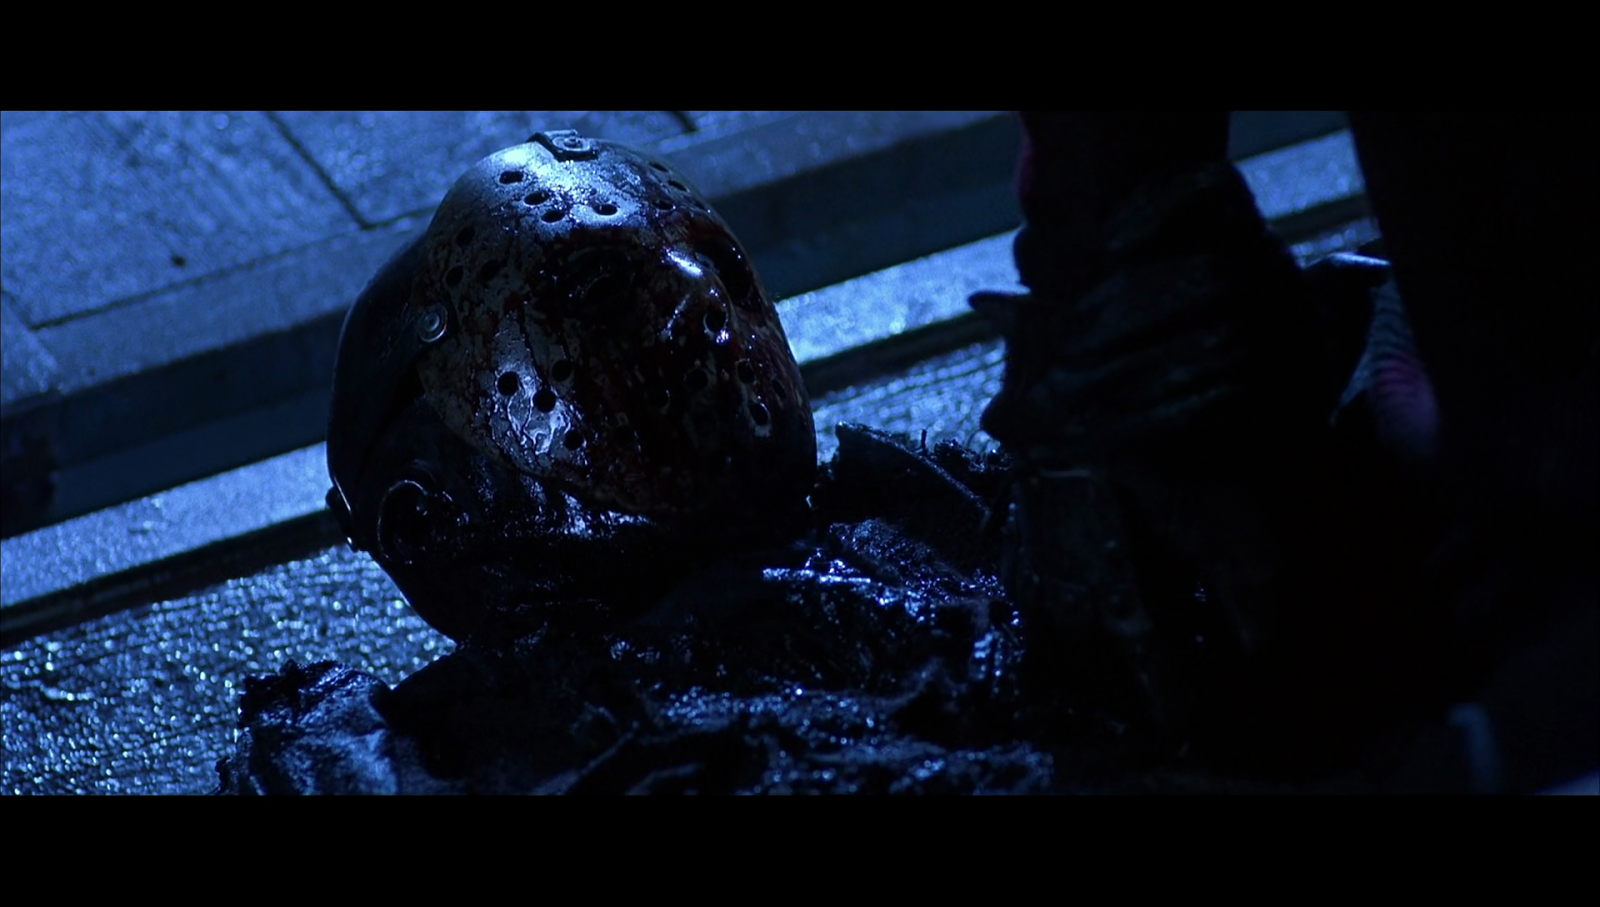 Captura de Freddy vs. Jason (2003) 1080p BluRay x265 HEVC DTS Dual Latino